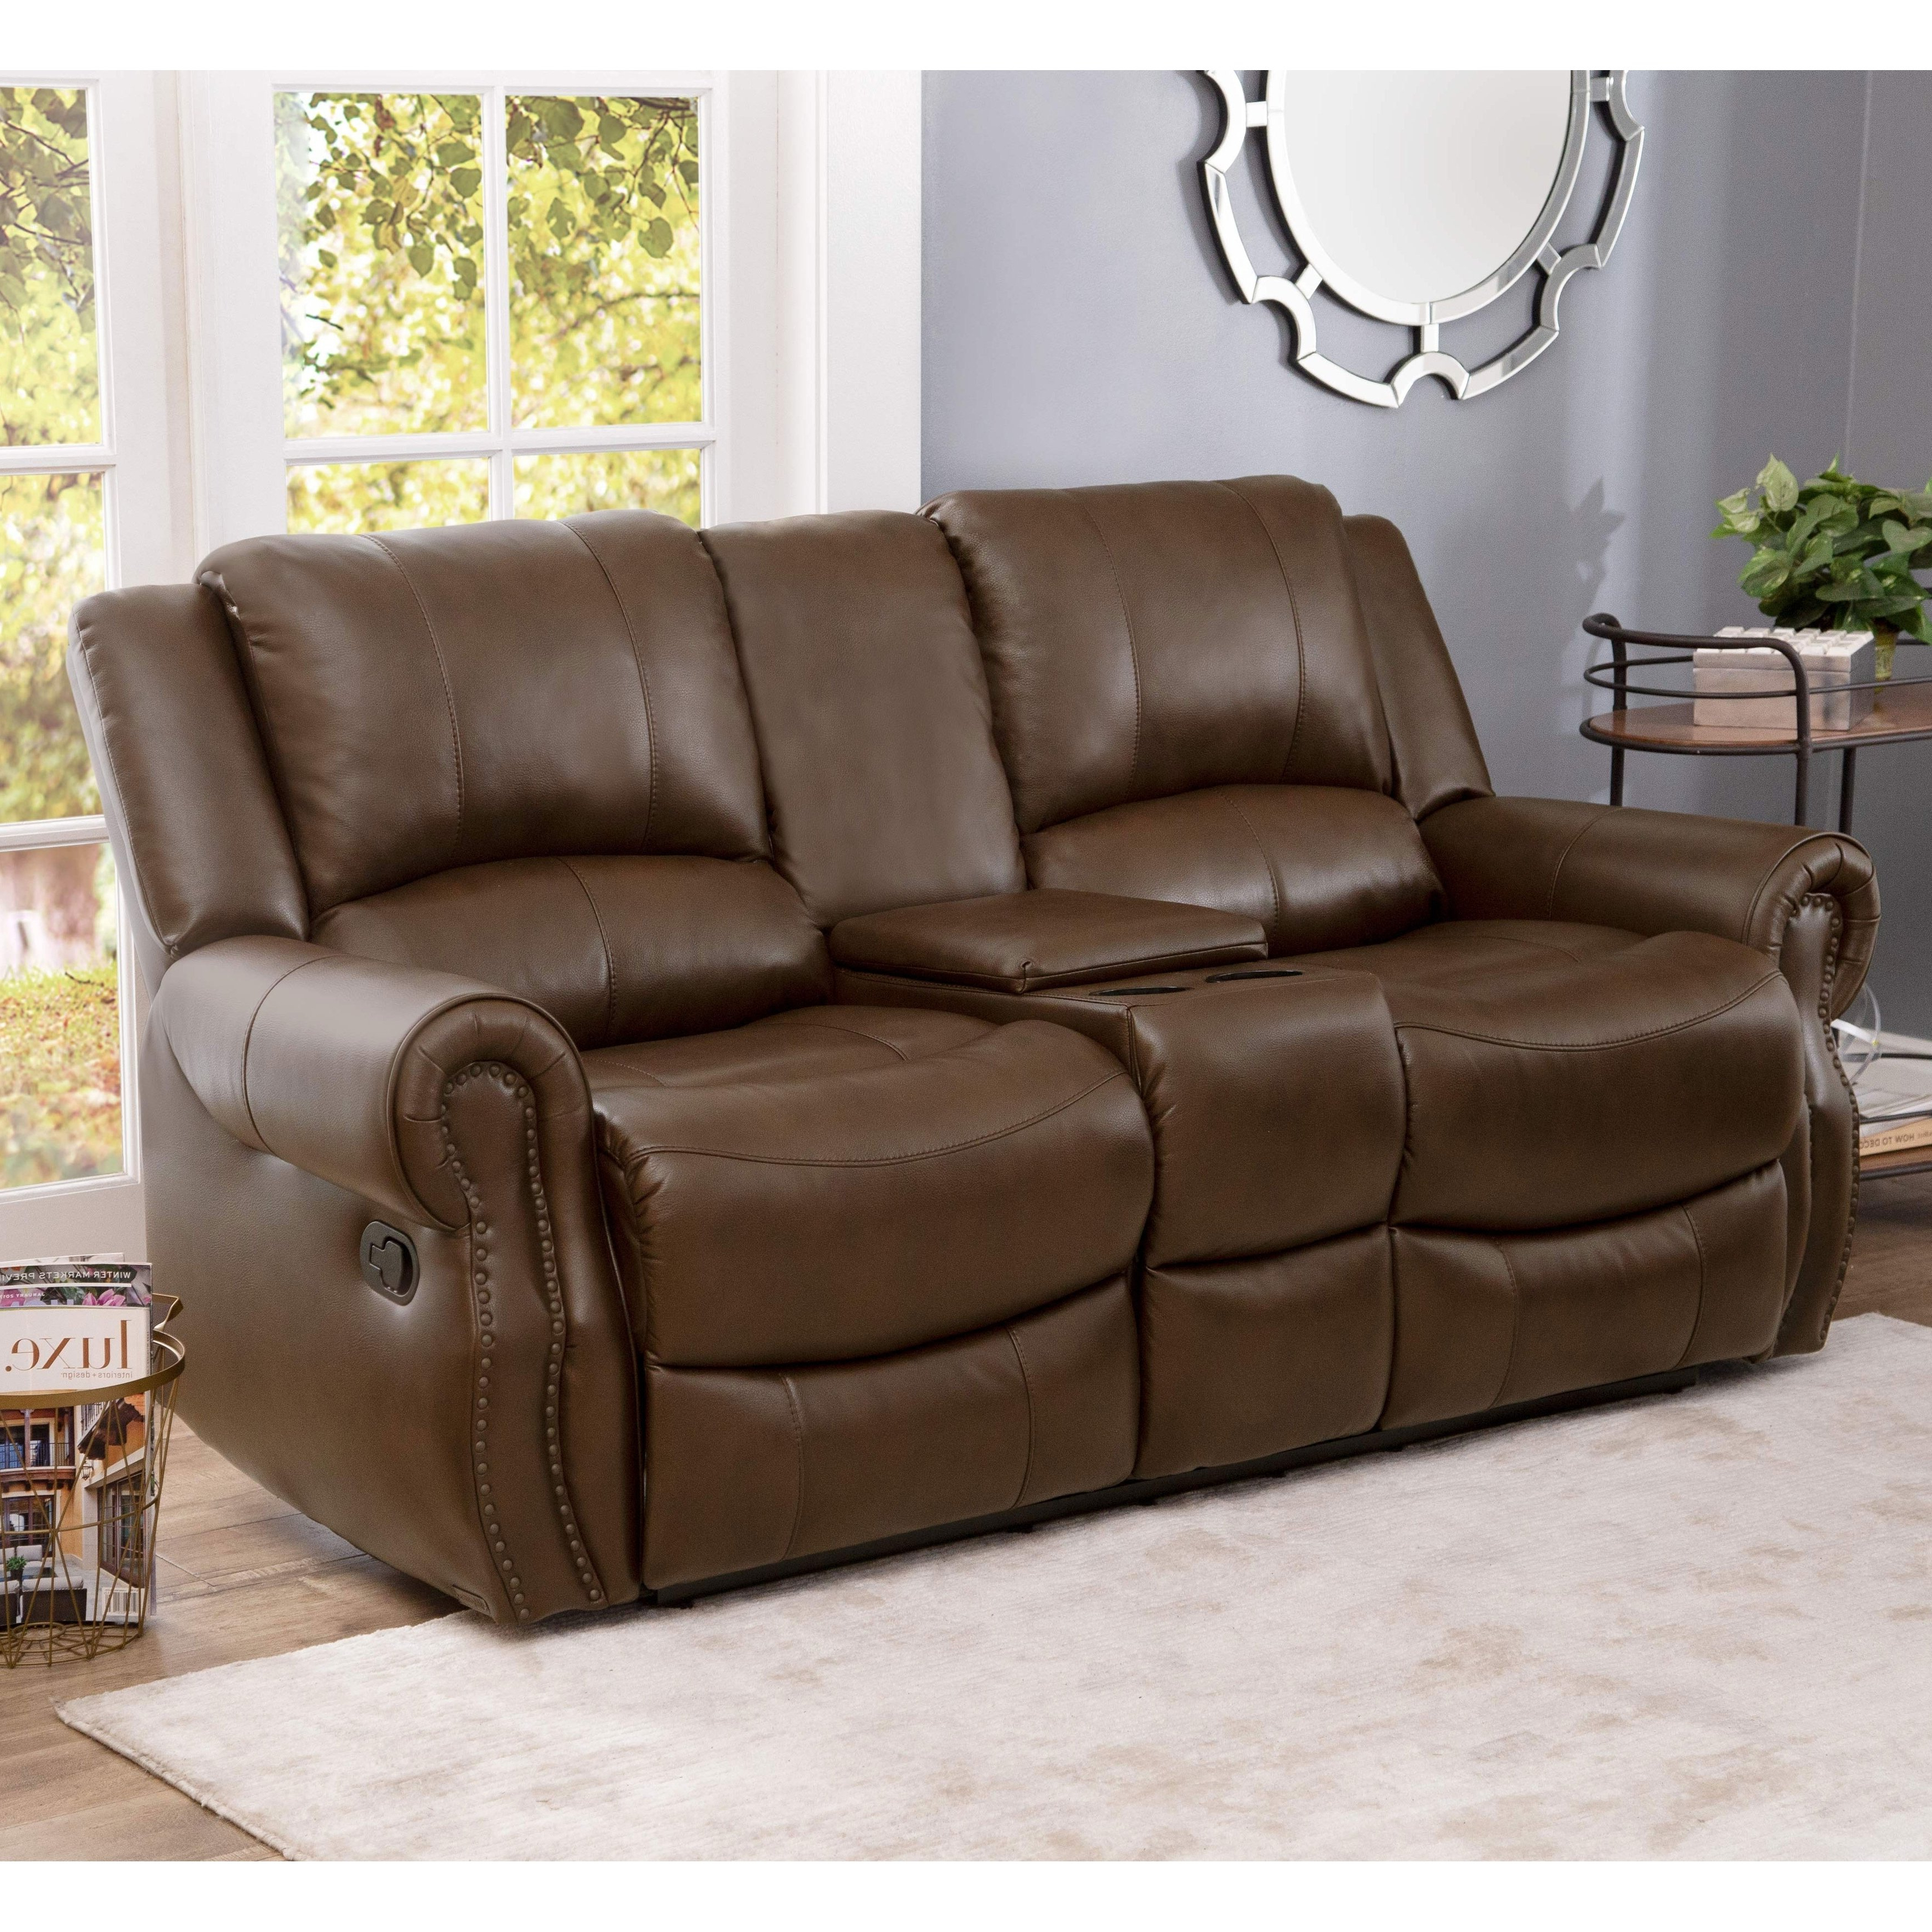 Favorite Mesa Foam Oversized Sofa Chairs With Regard To Shop Abbyson Calabasas Mesa Brown Leather Reclining Console Loveseat (View 4 of 20)